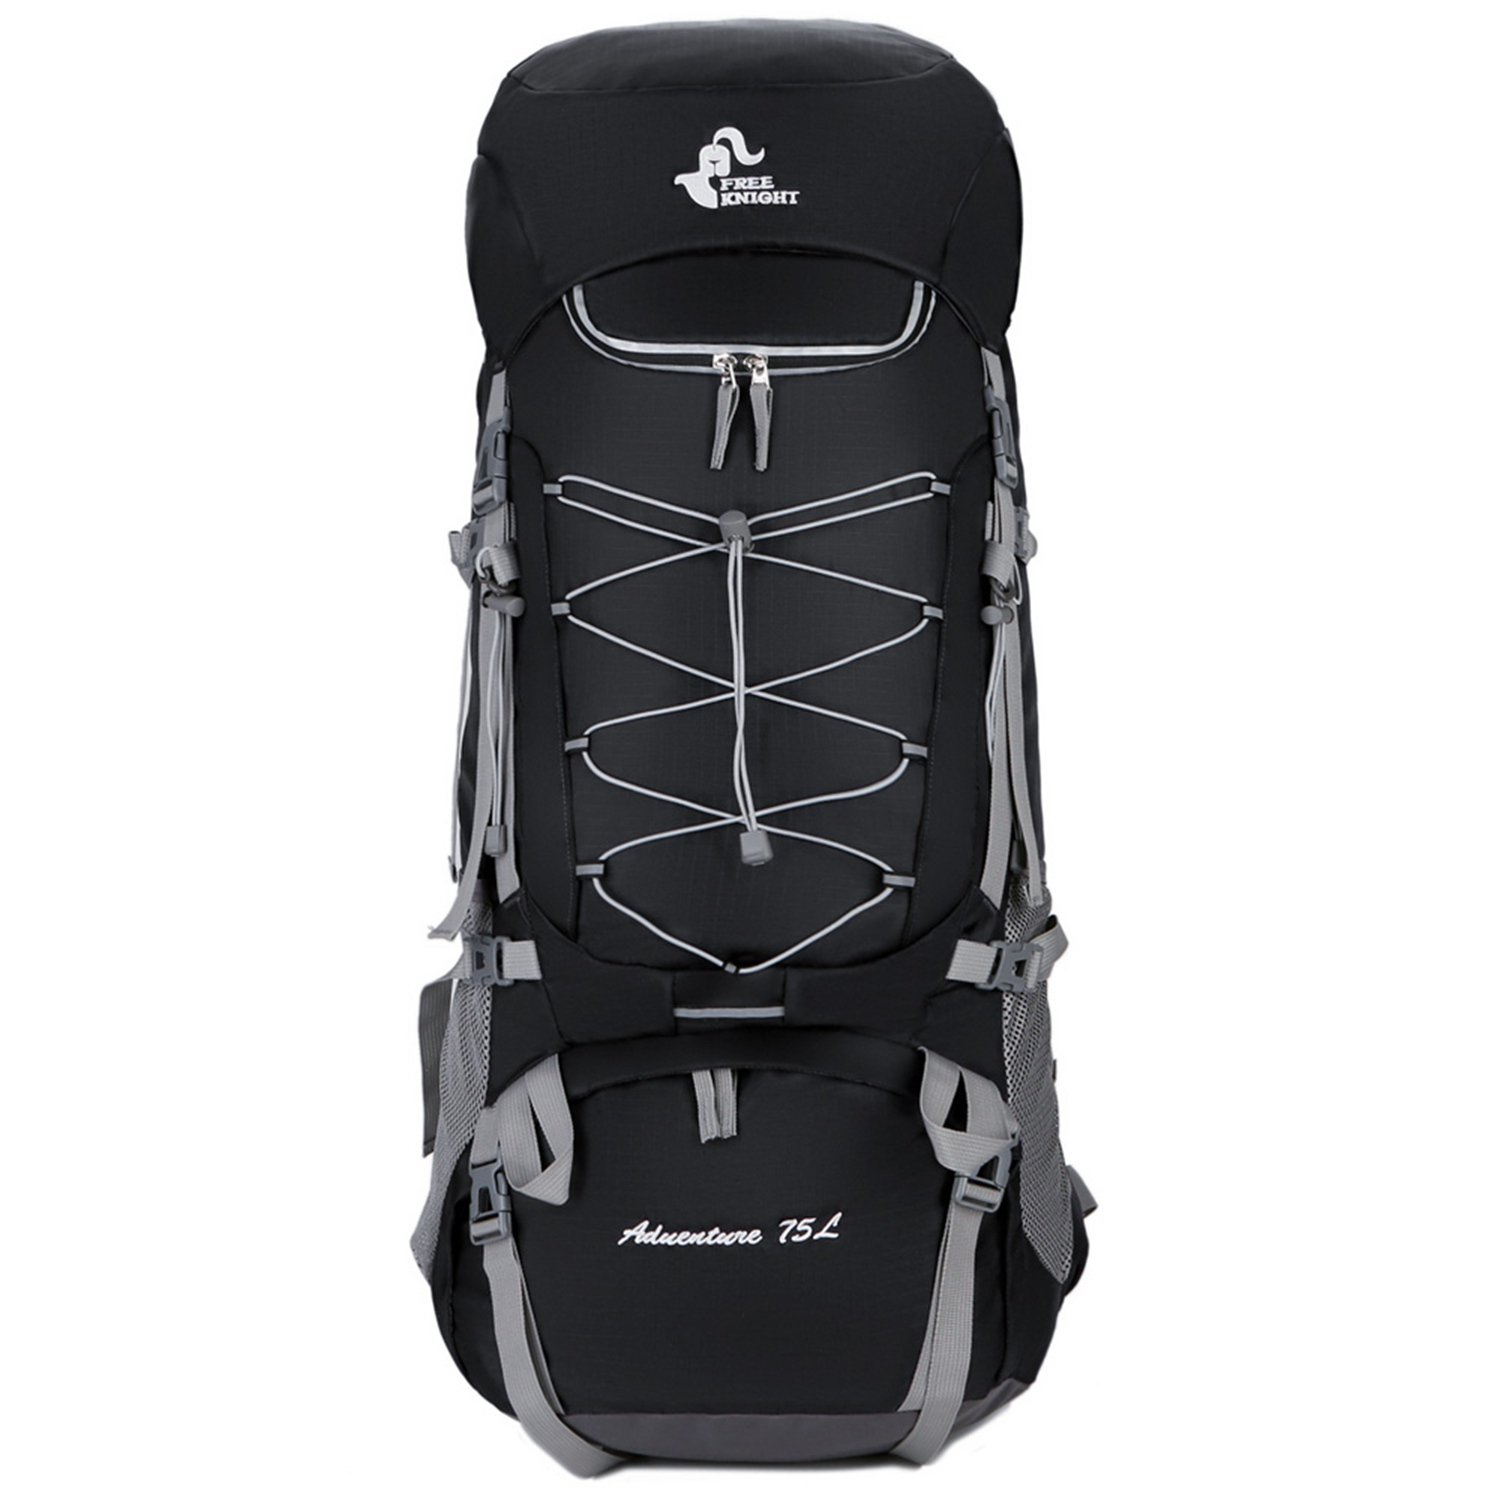 ABDB-Free Knight 75L Water-Resistant Hiking Backpack Lightweight Camping Pack Travel Mountaineering Backpacking Trekking RucksABDB-Free Knight 75L Water-Resistant Hiking Backpack Lightweight Camping Pack Travel Mountaineering Backpacking Trekking Rucks